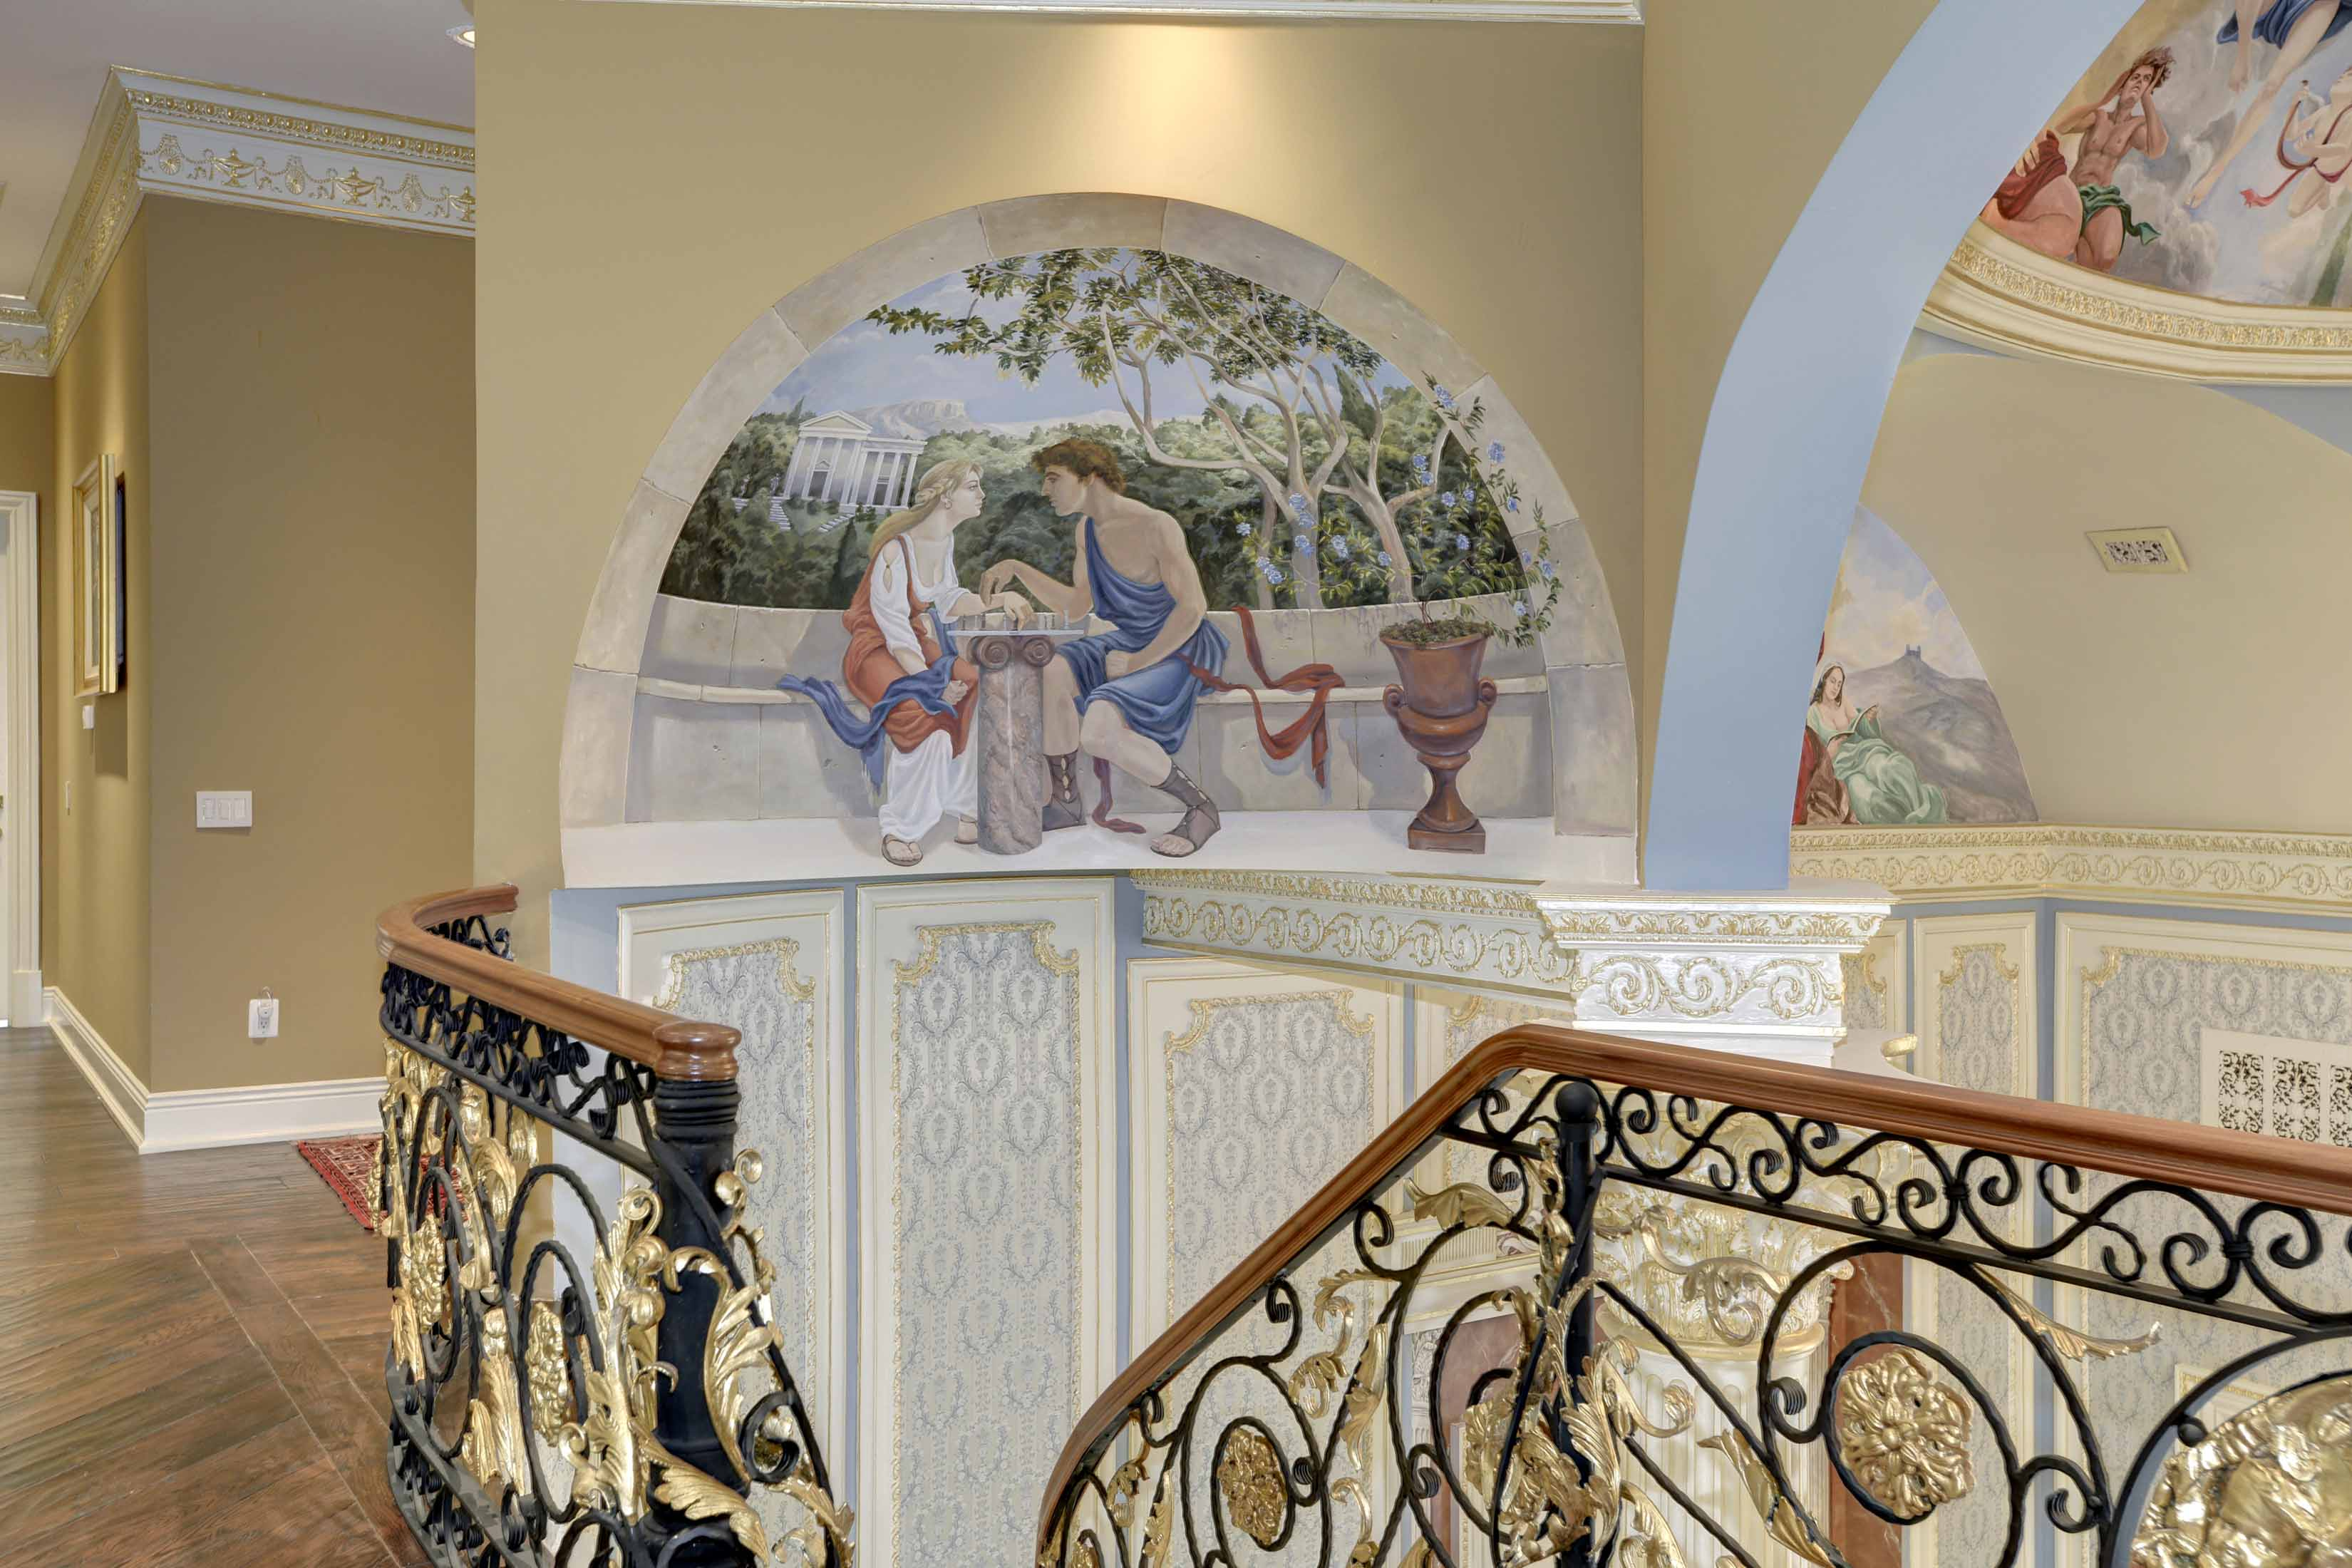 Stairwell with custom murals in dome